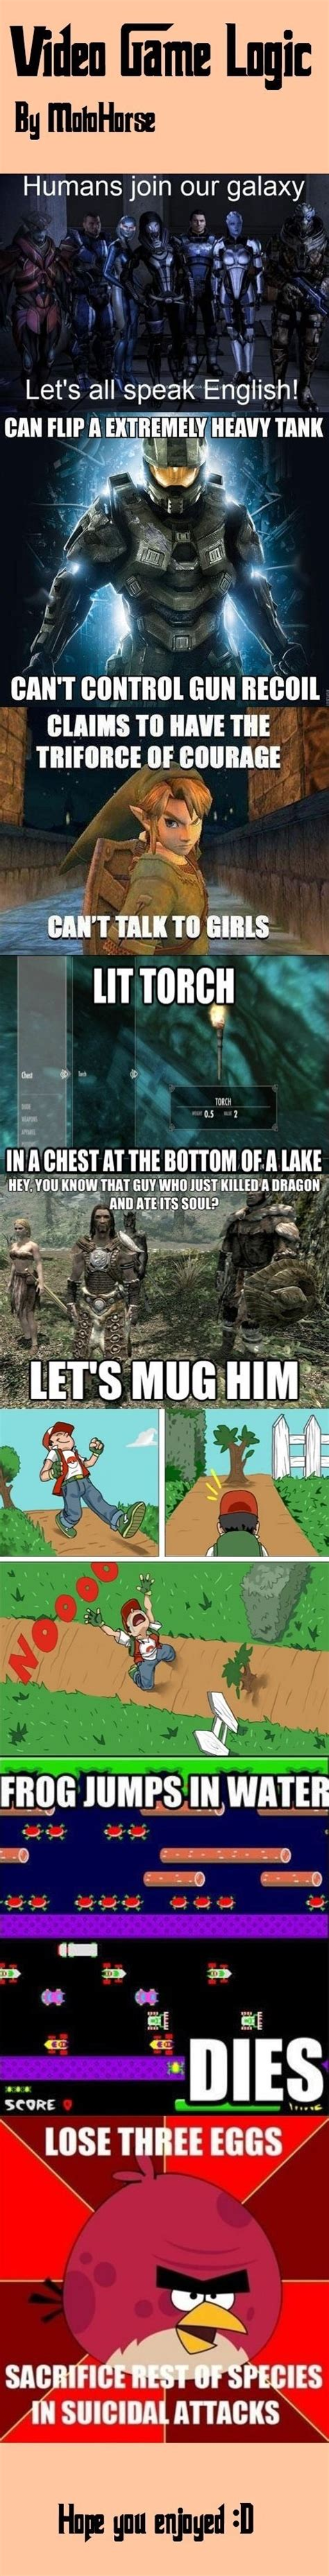 Game Logic Meme - funny video game logic memes jpg